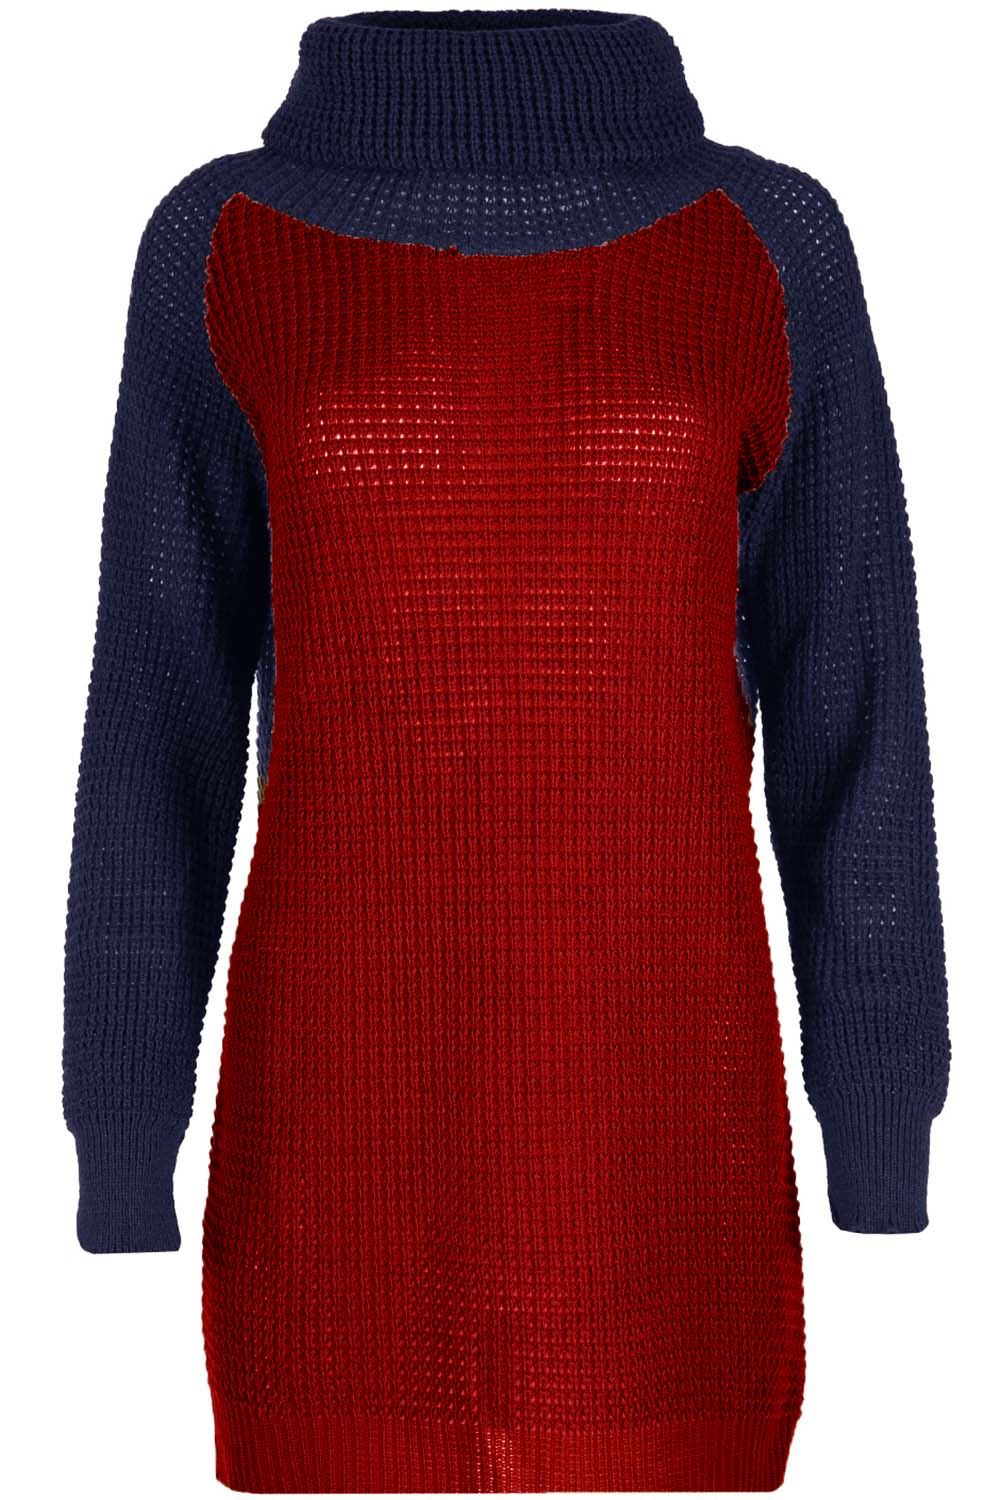 Ladies-Womens-Cowl-Neck-Baggy-Oversized-Chunky-Knit-Contrast-Sleeve-Jumper-Dress